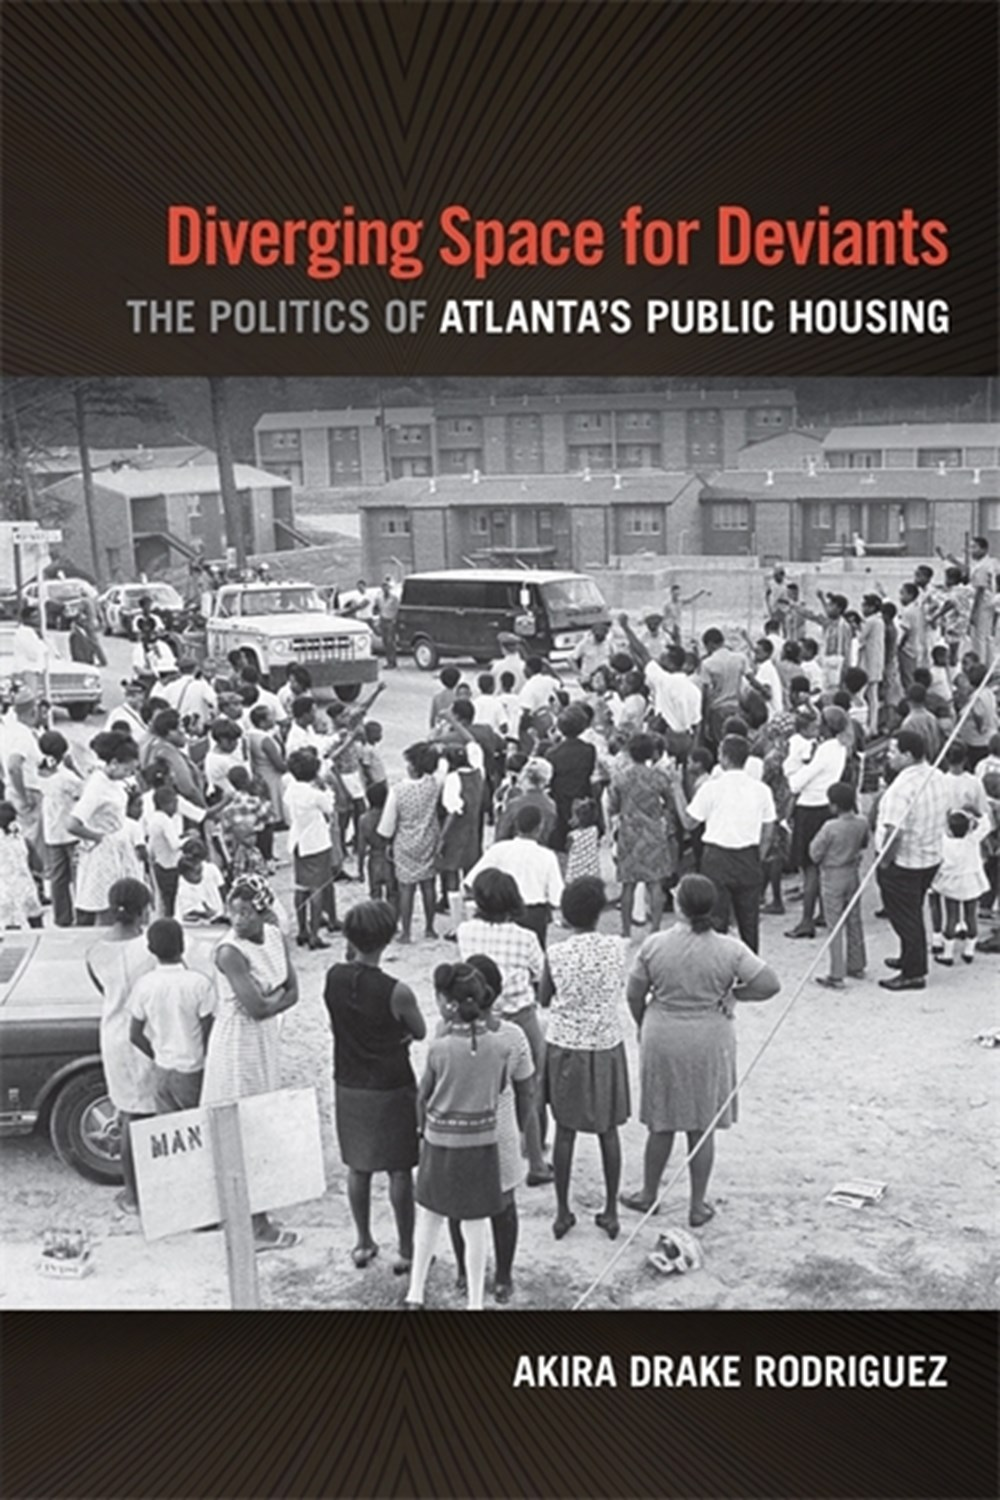 Diverging Space for Deviants The Politics of Atlanta's Public Housing